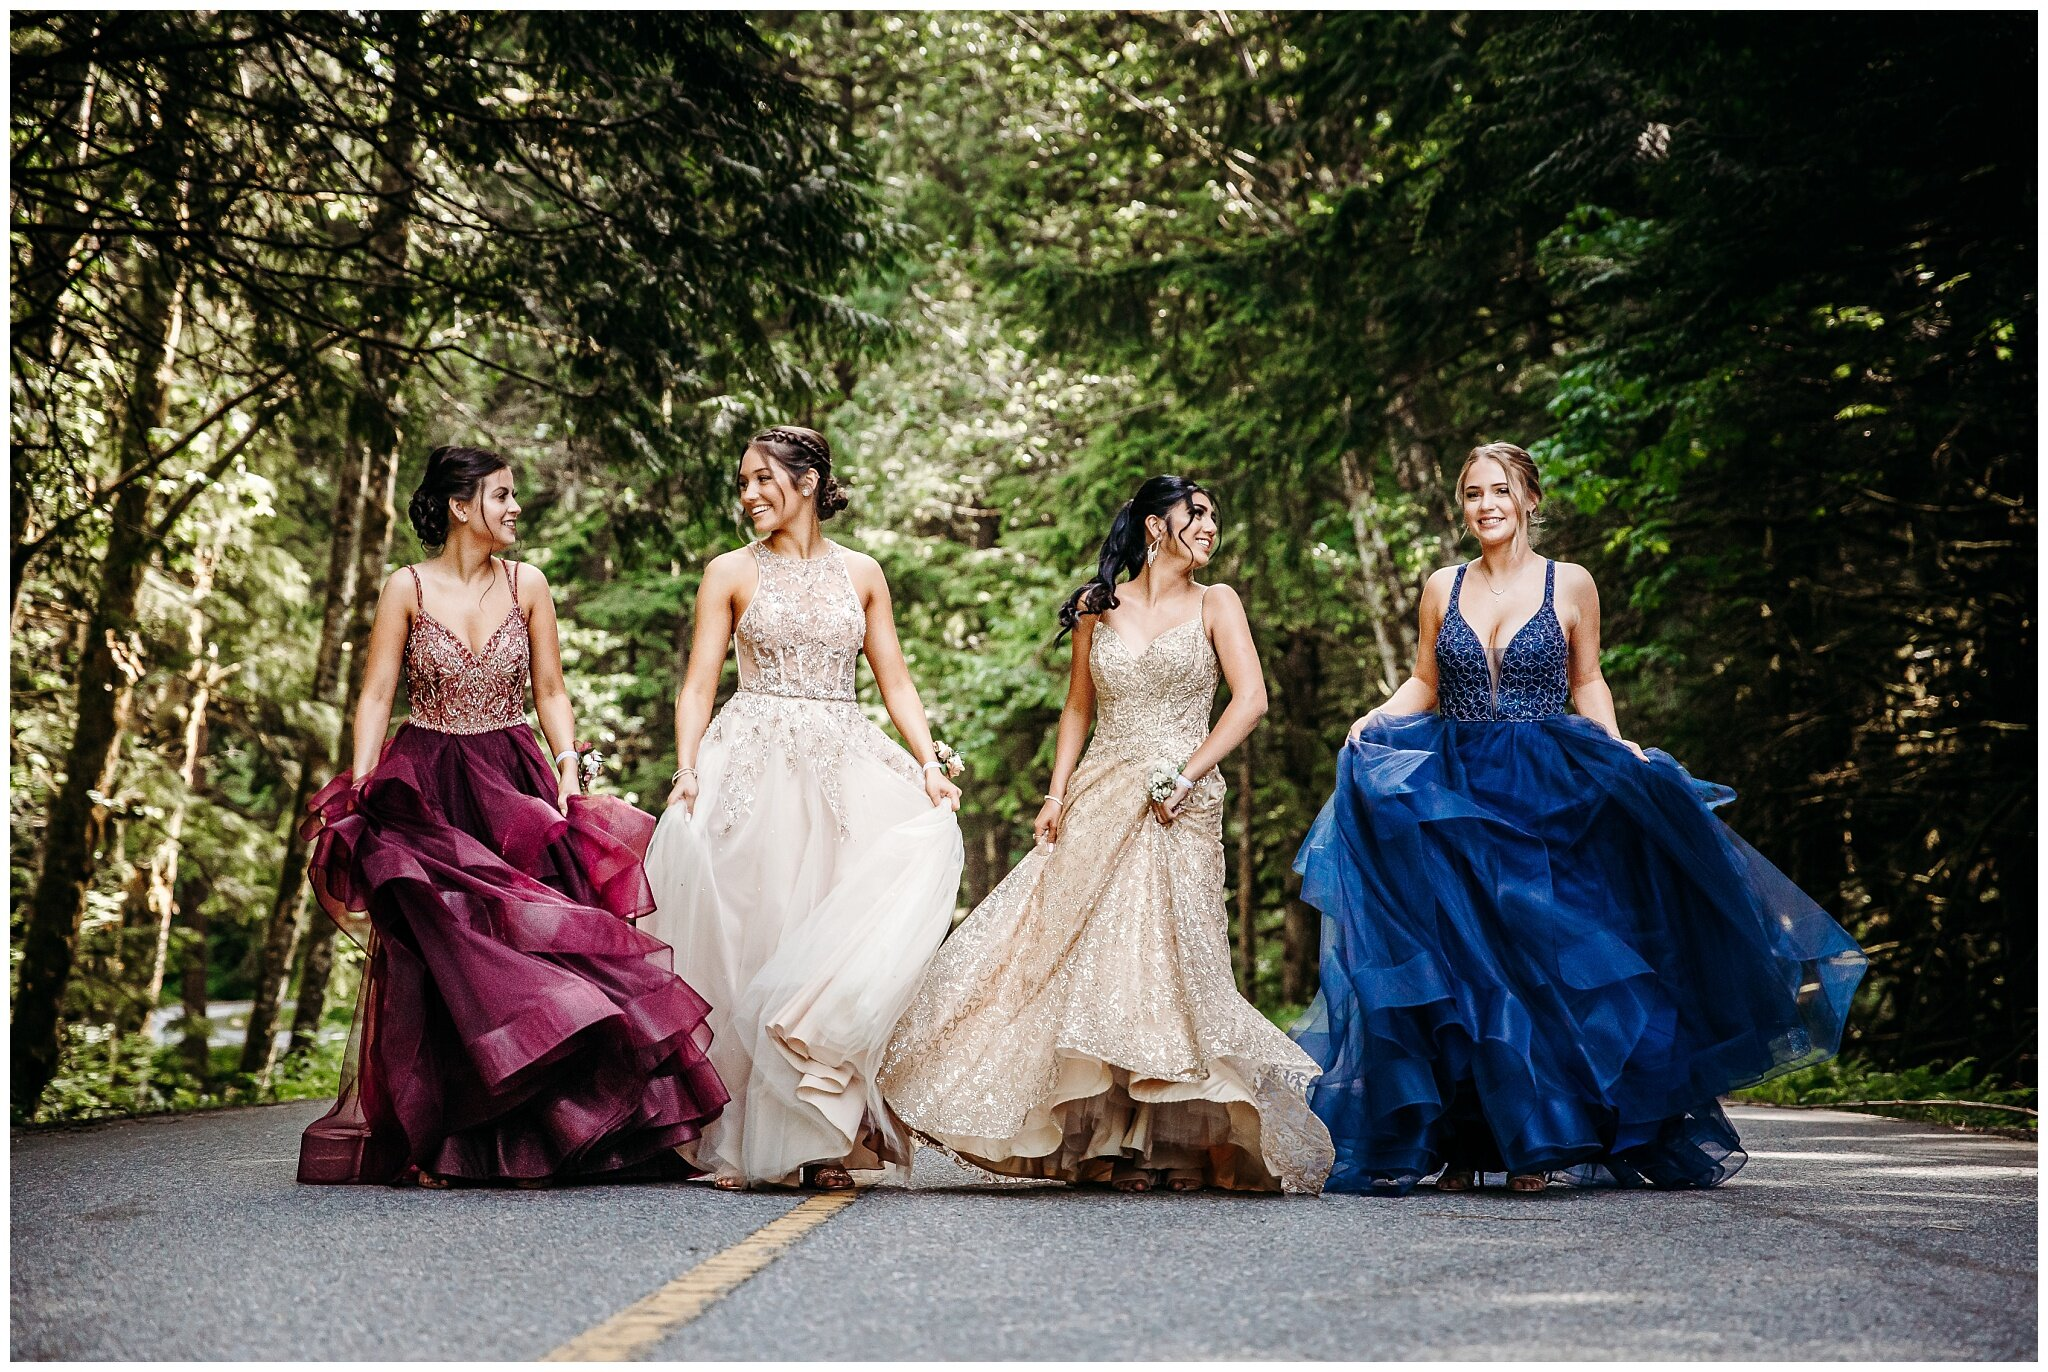 Abbotsford Highschool Prom Graduation Photographer 2019 Abbotsford fun bright_0025.jpg